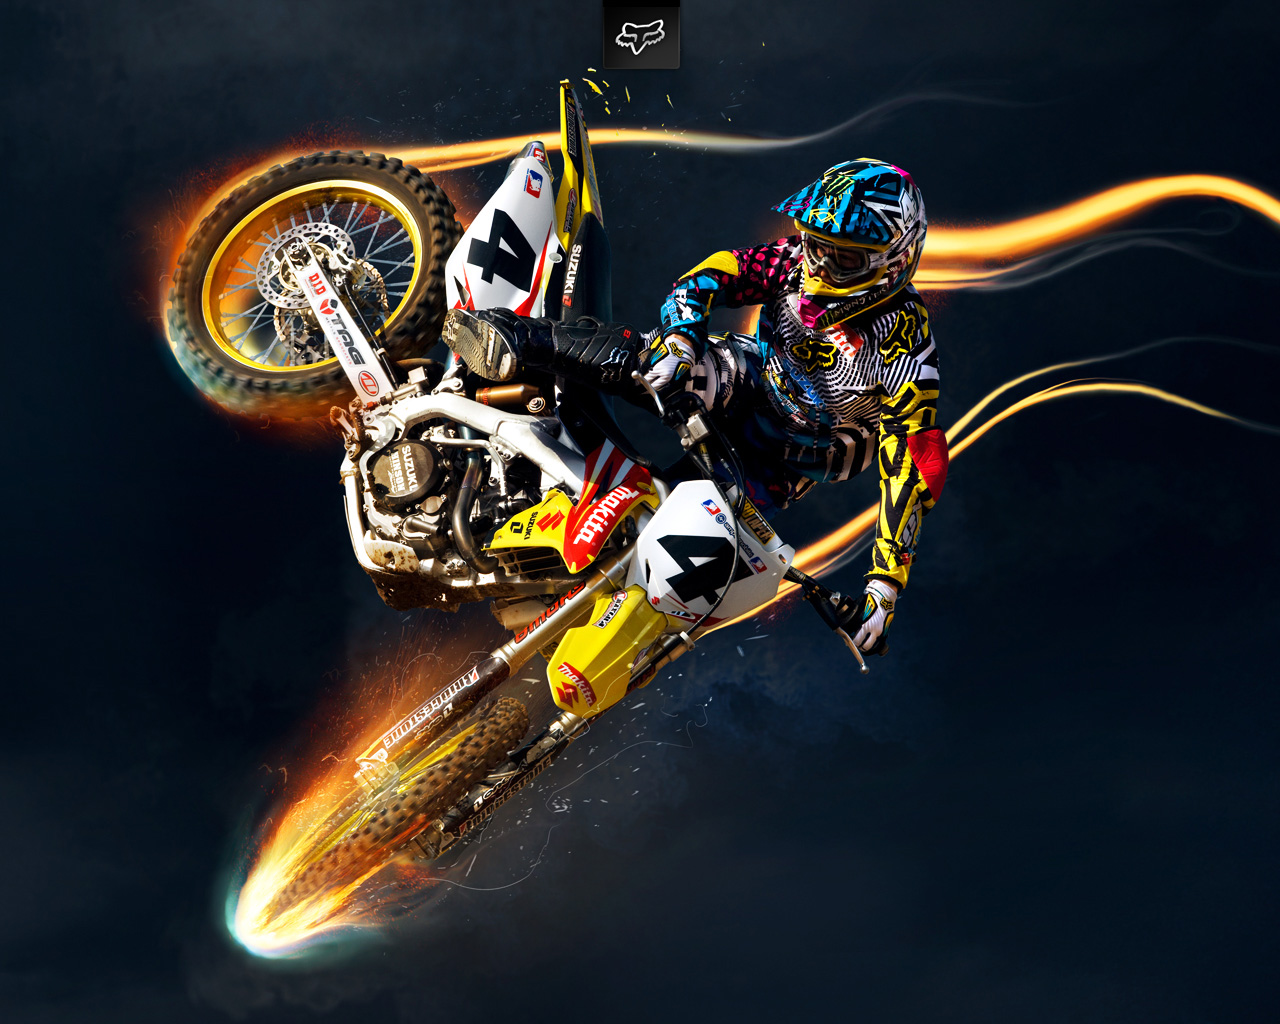 Thema Coole Motocross Wallpaper 1280x1024